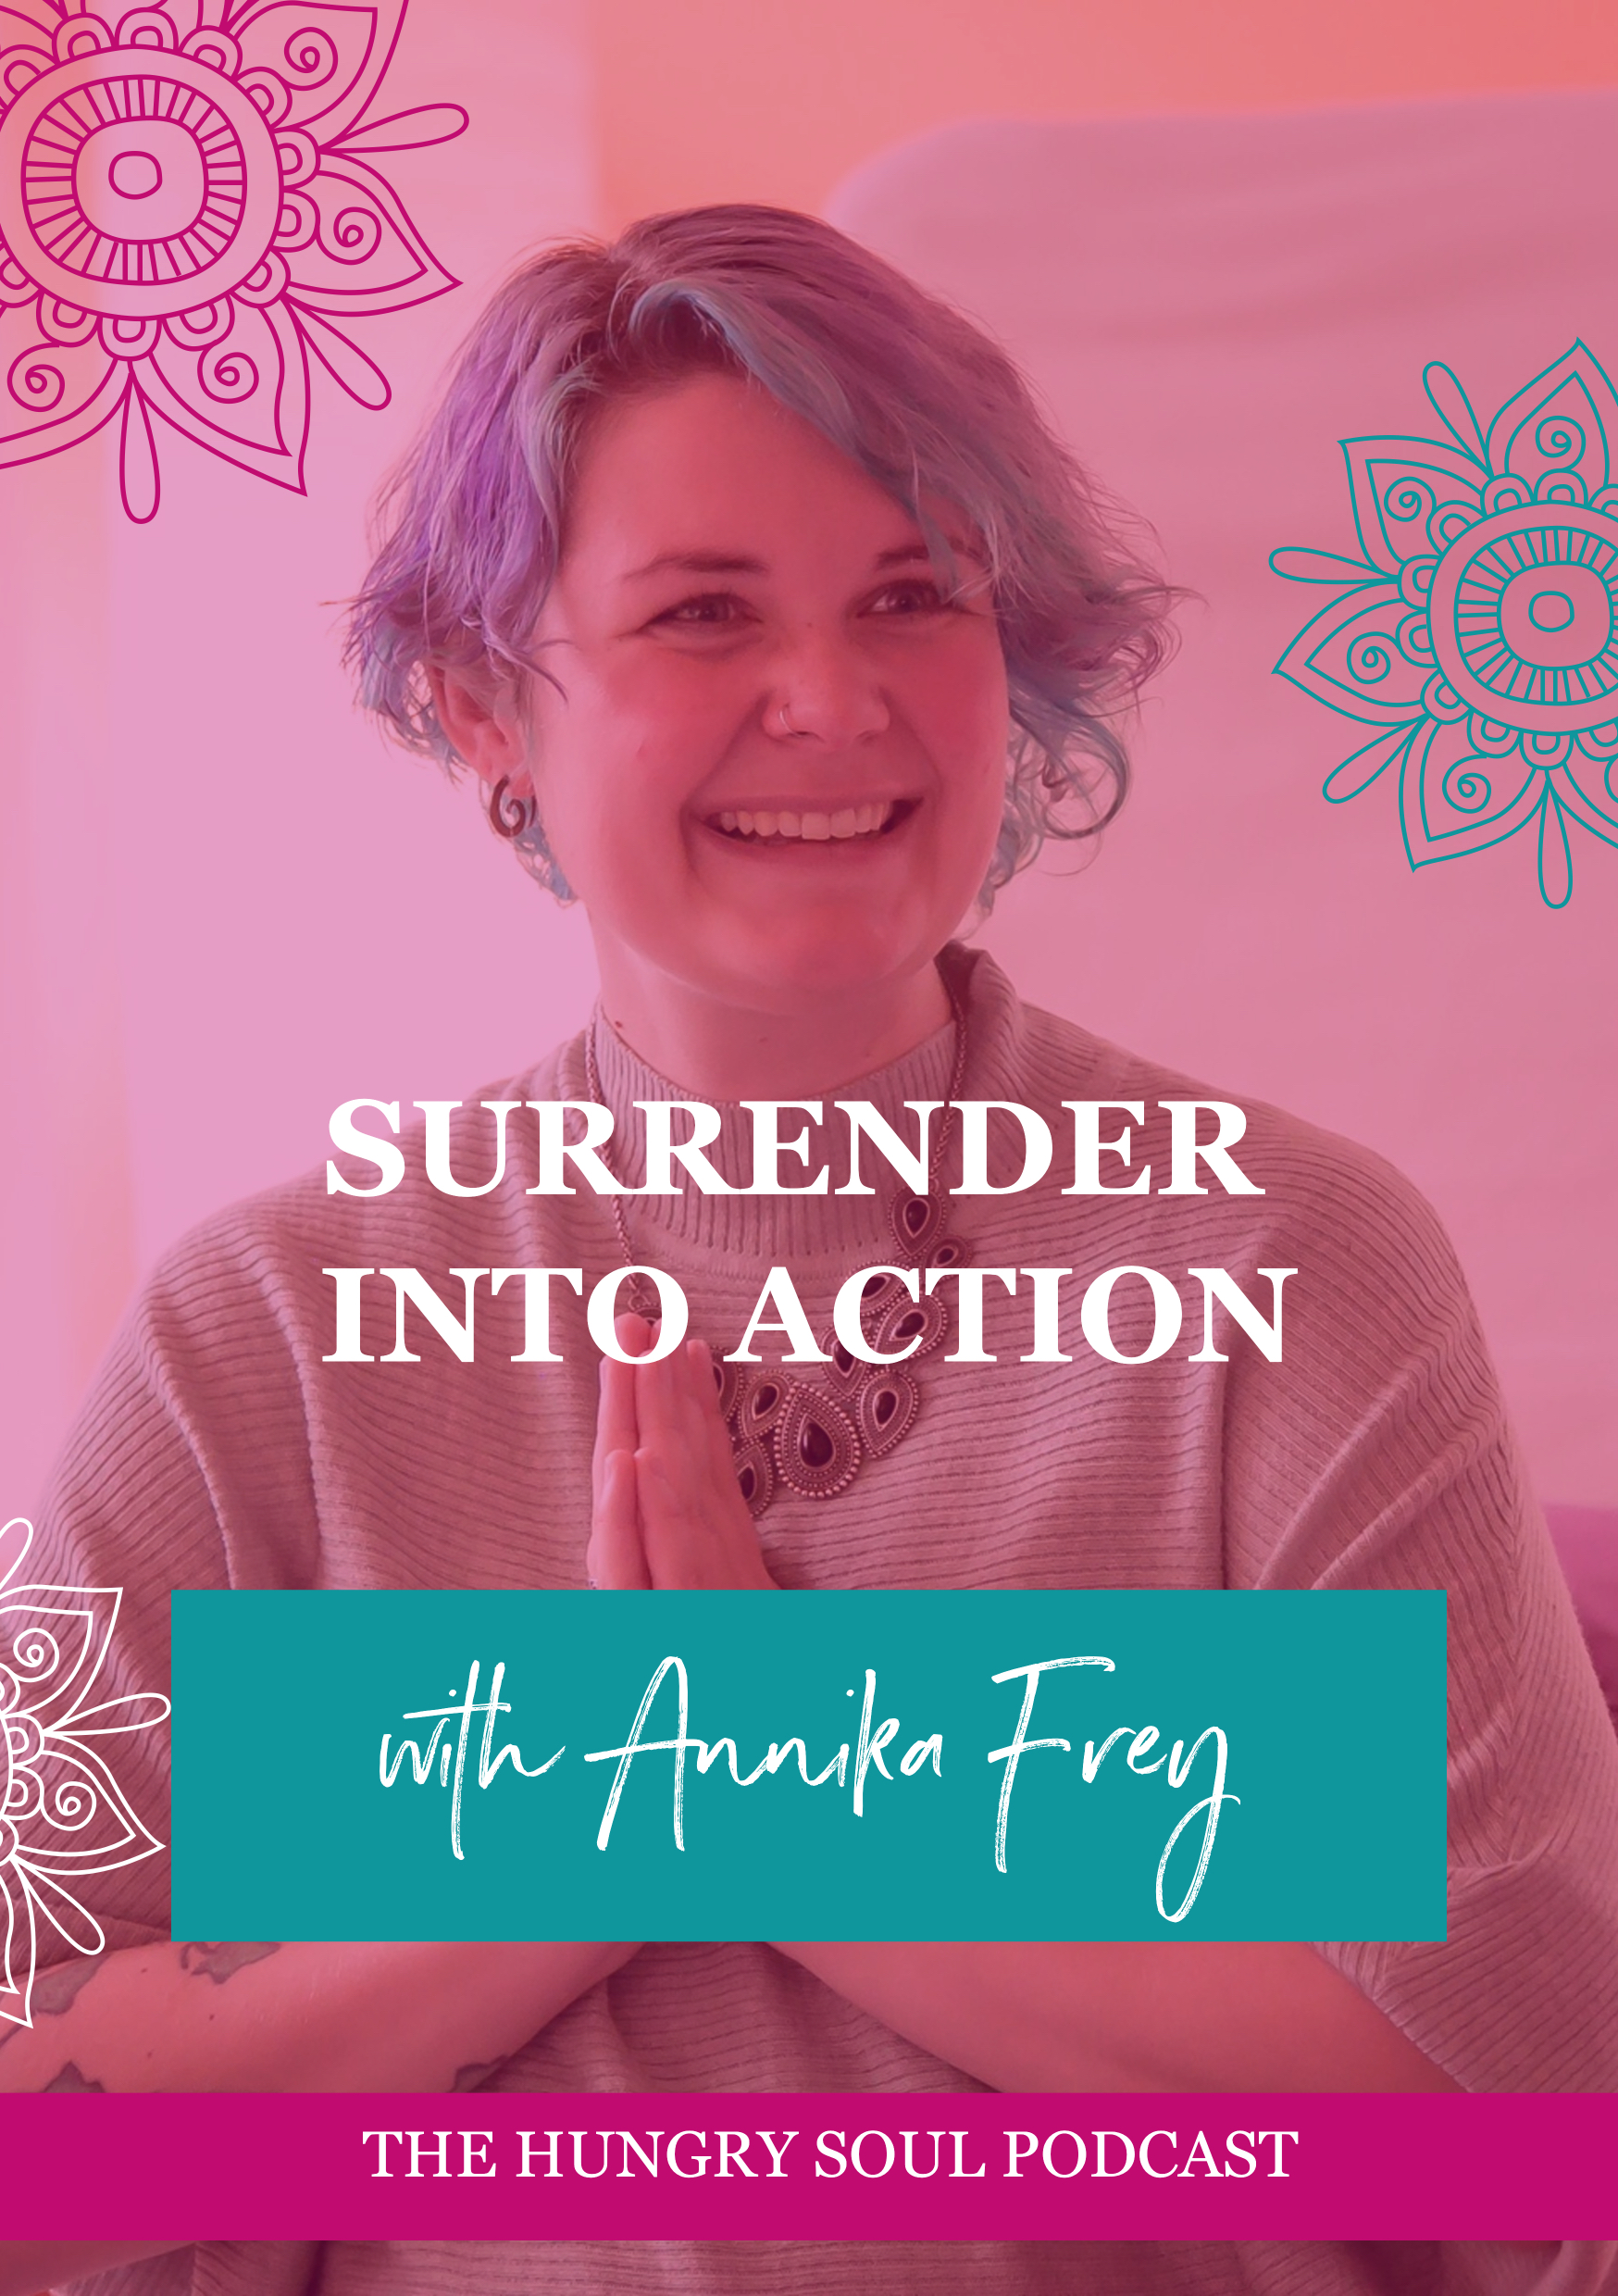 The Hungry Soul host Rachel Foy interviews Annika Frey on how we can learn to surrender into action by listening and trusting our inner world